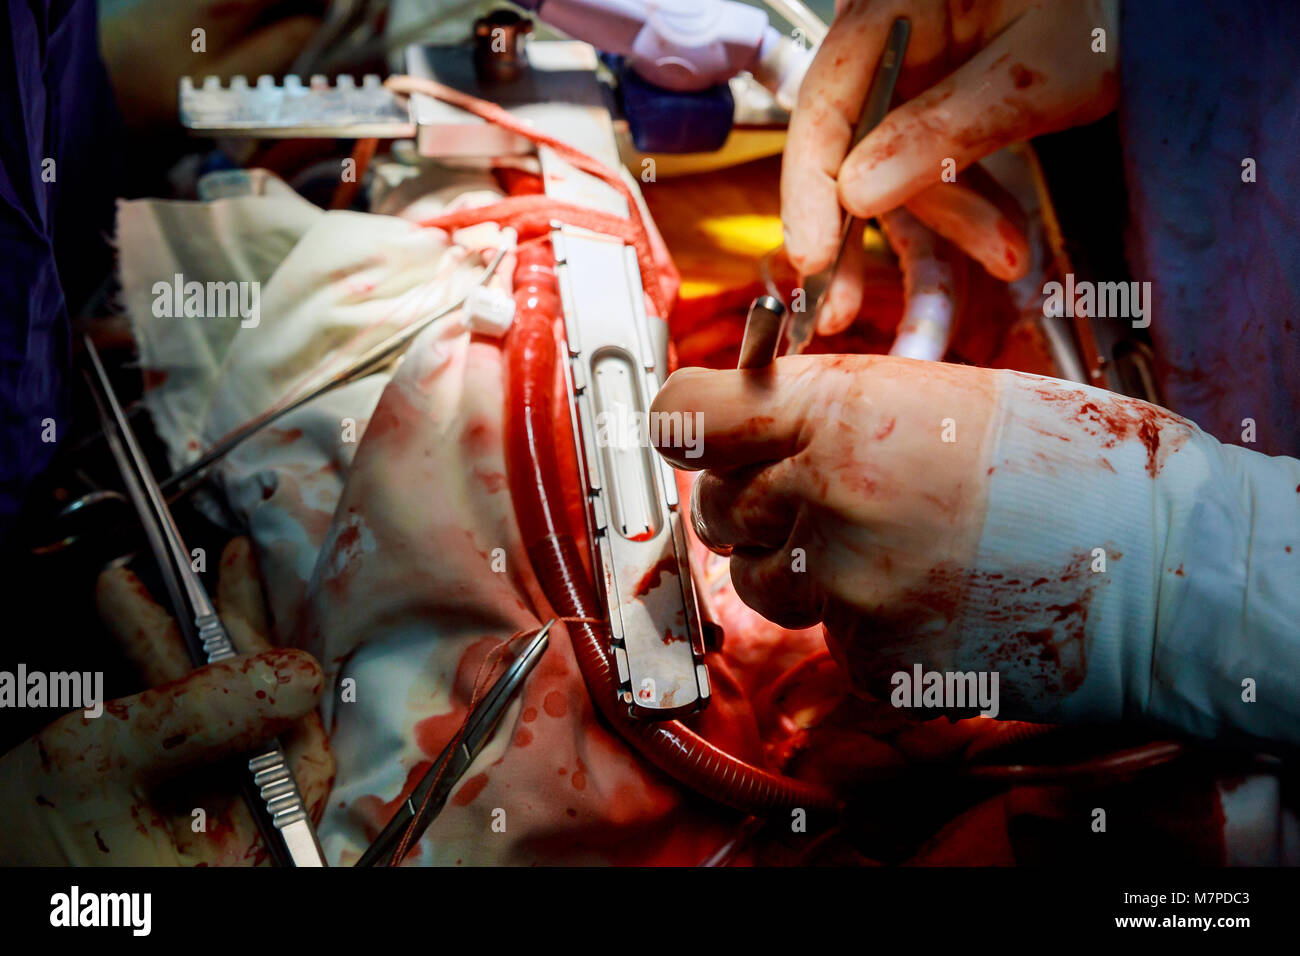 open heart surgery for coronary surgery Surgeon Inserting Tube Into Patient During Surgery - Stock Image